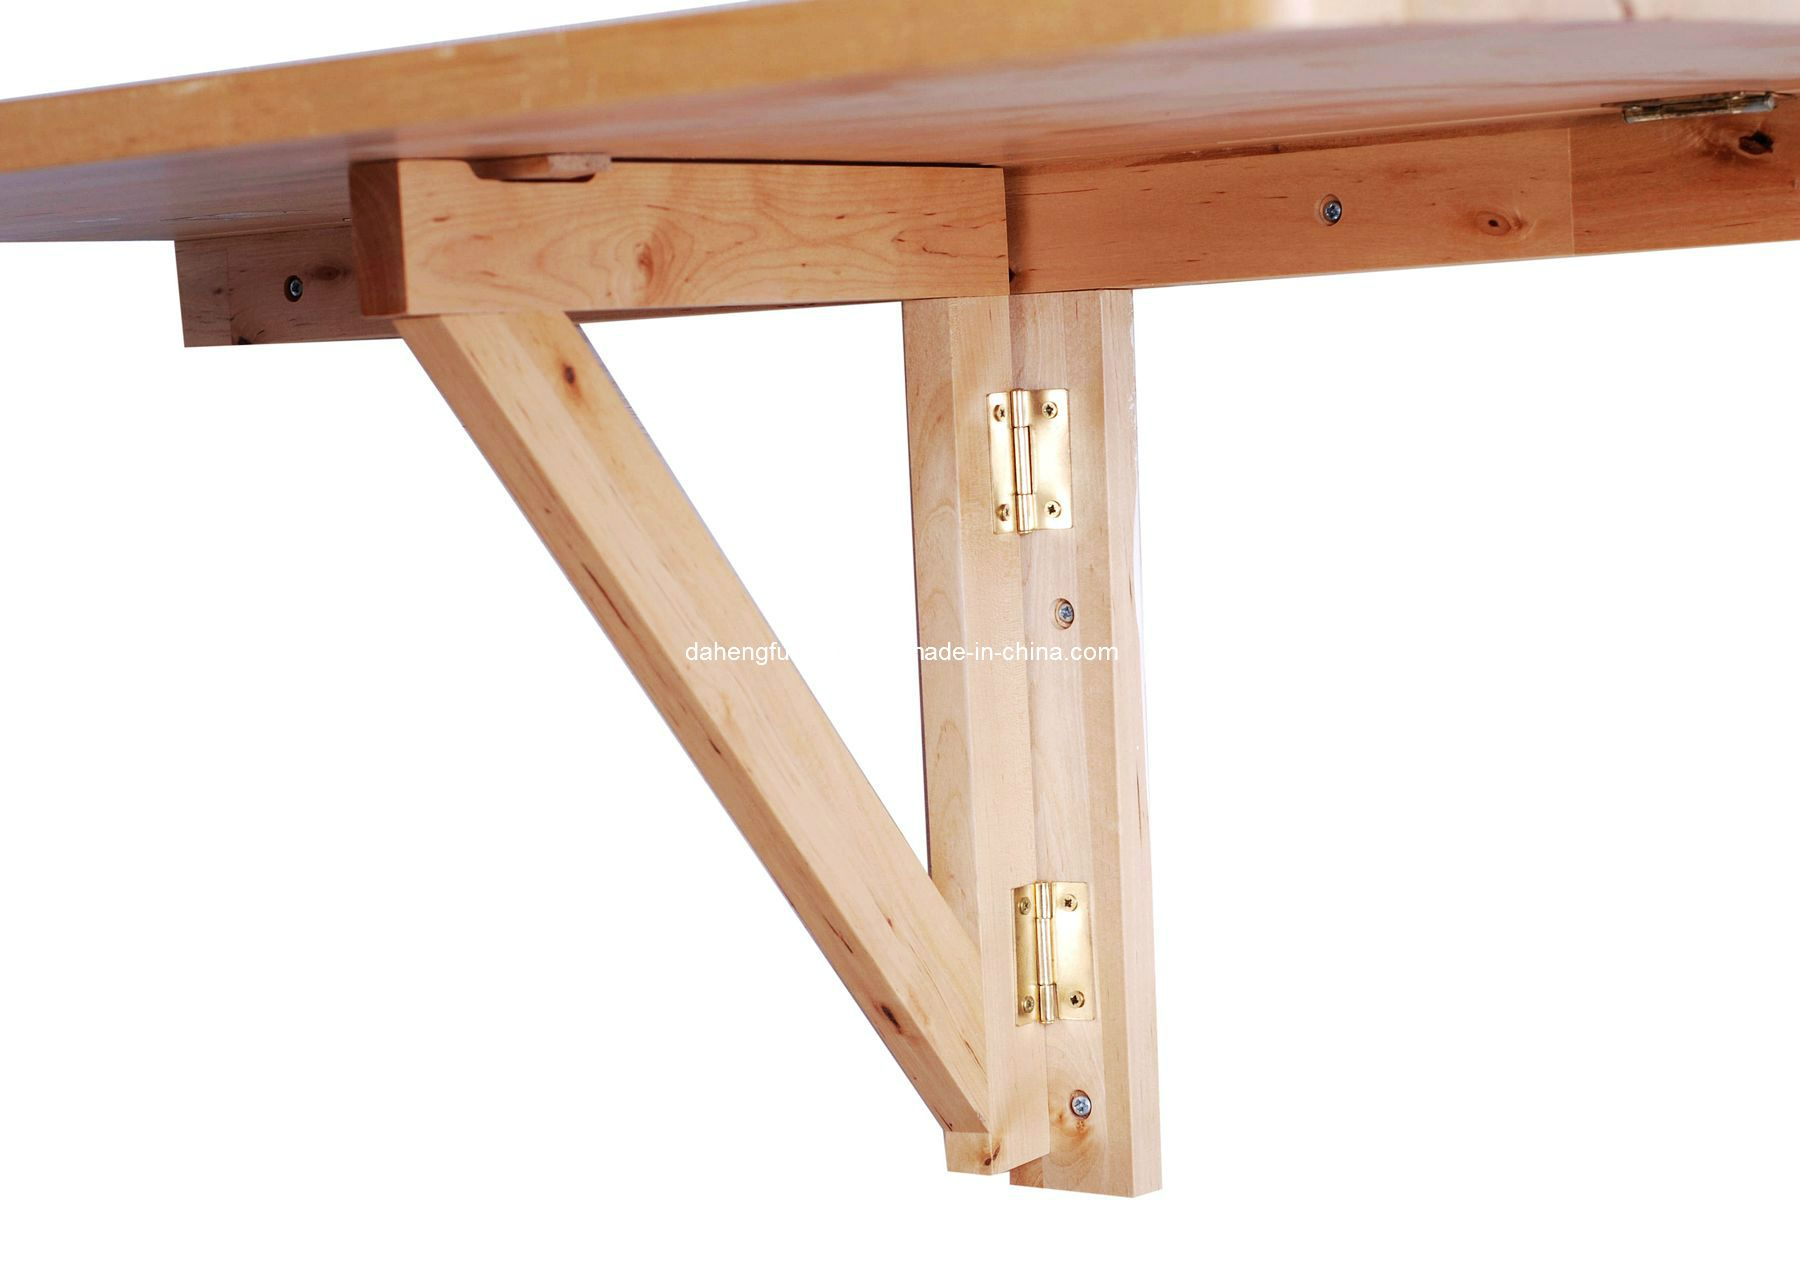 Use This Type Of Hinge For Fold Down/built In/ Deck Bar. 2013. Wall Mounted  Folding TableFolding TablesOutdoor ...